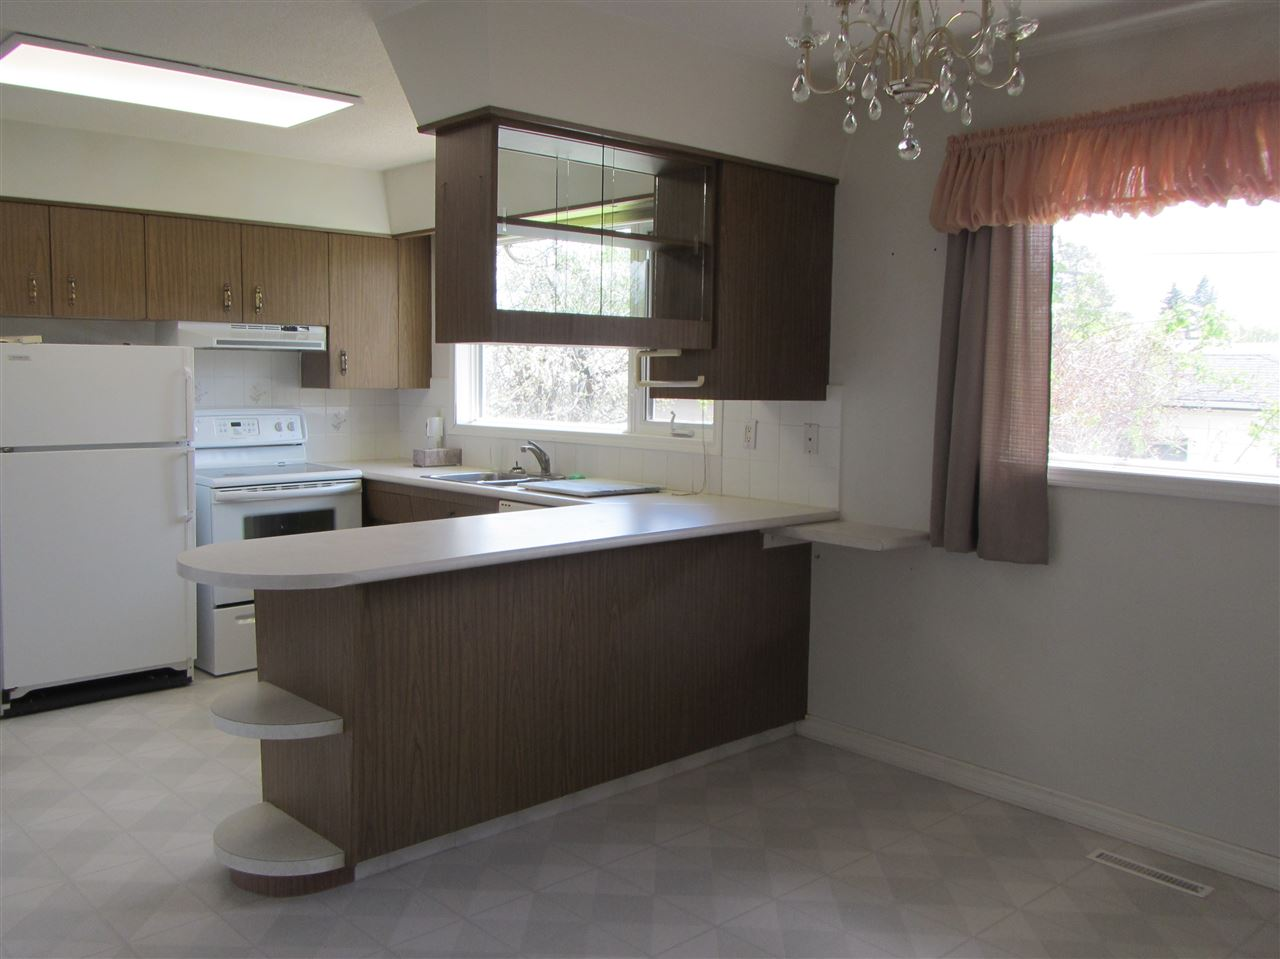 Kitchen opens onto dining area.